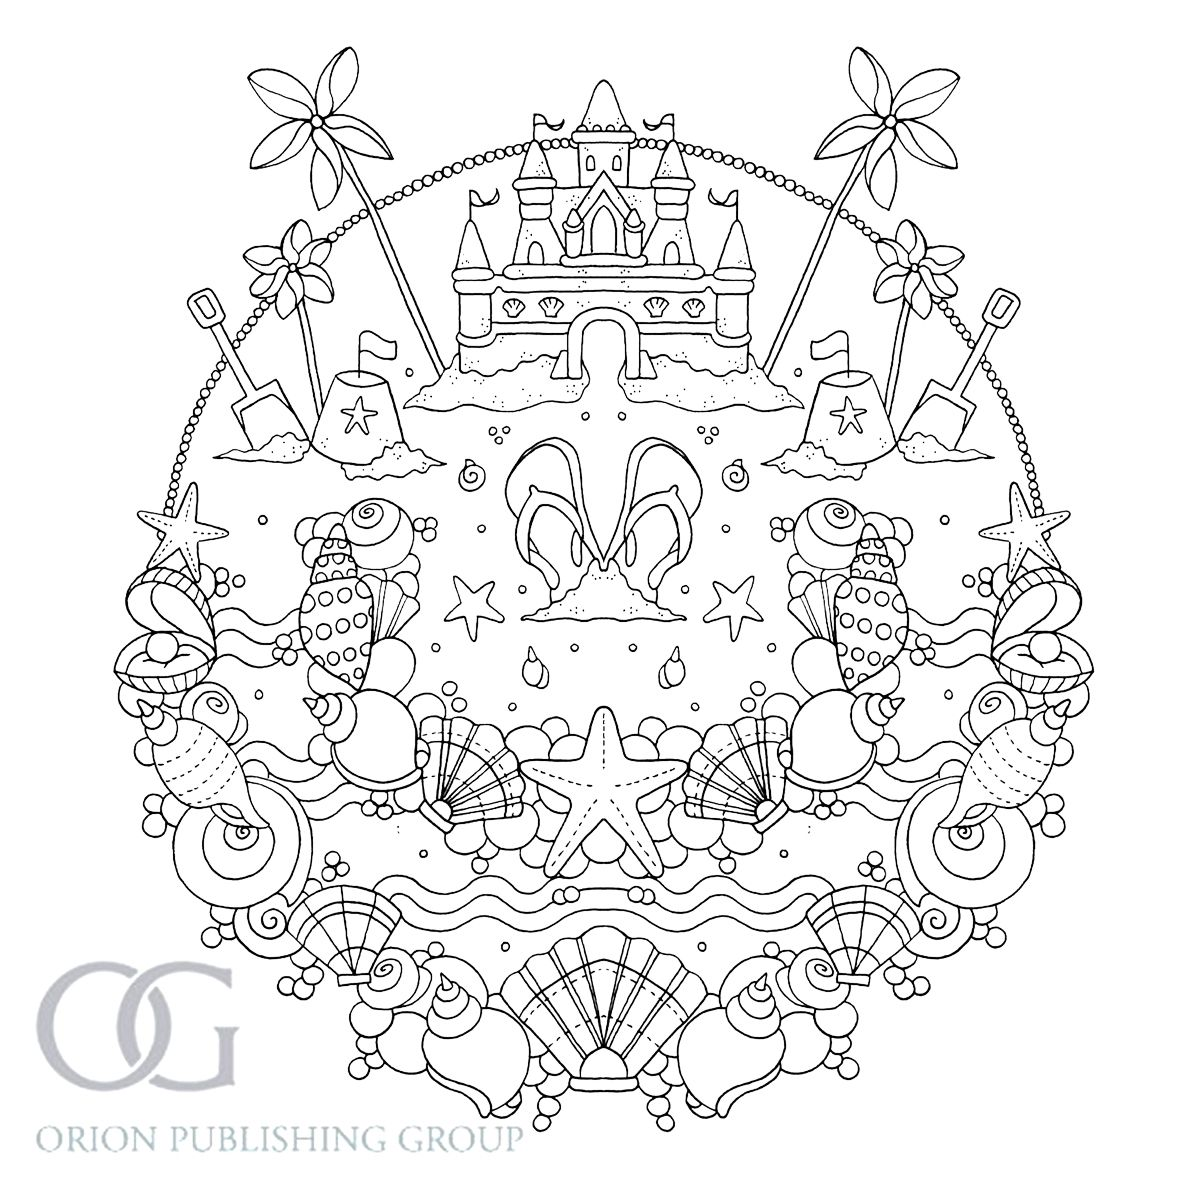 Anastasia Catris » Category » Book Illustration | Coloring for ...